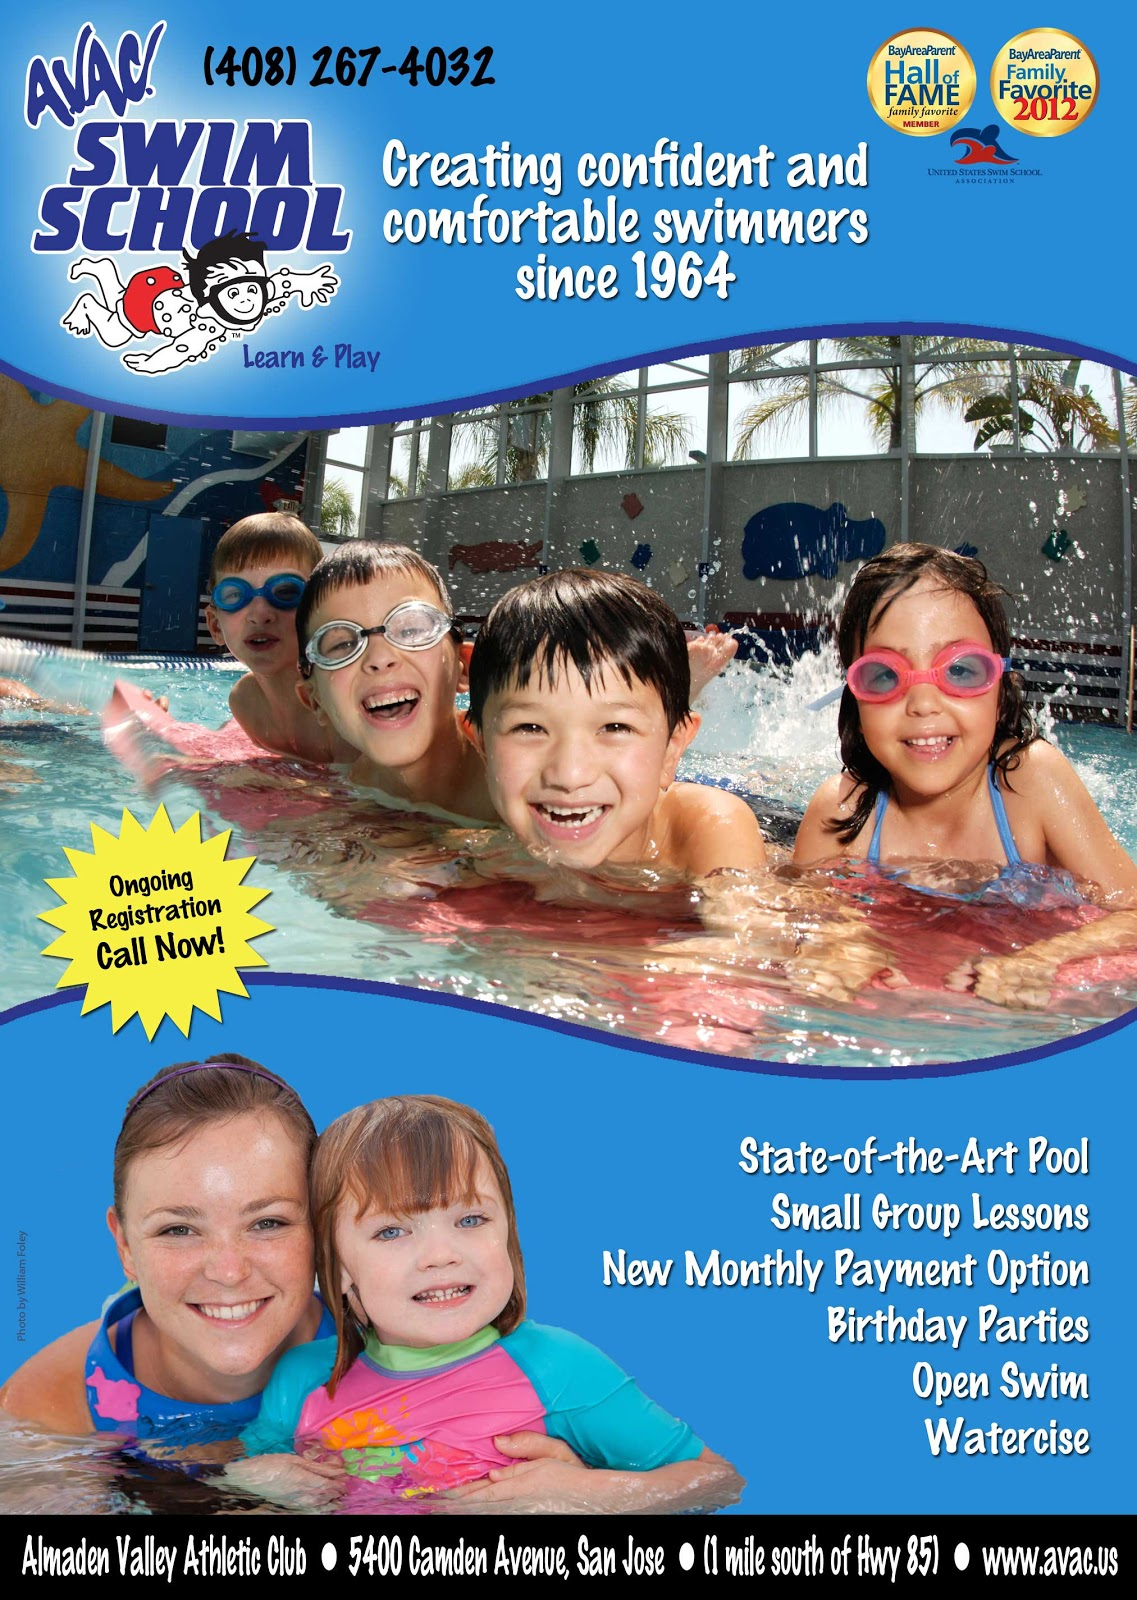 scarlet dolphin media blog jj barber has been creating ads for bay area parent magazines and several other local periodicals for the last 10 years does your preschool daycare